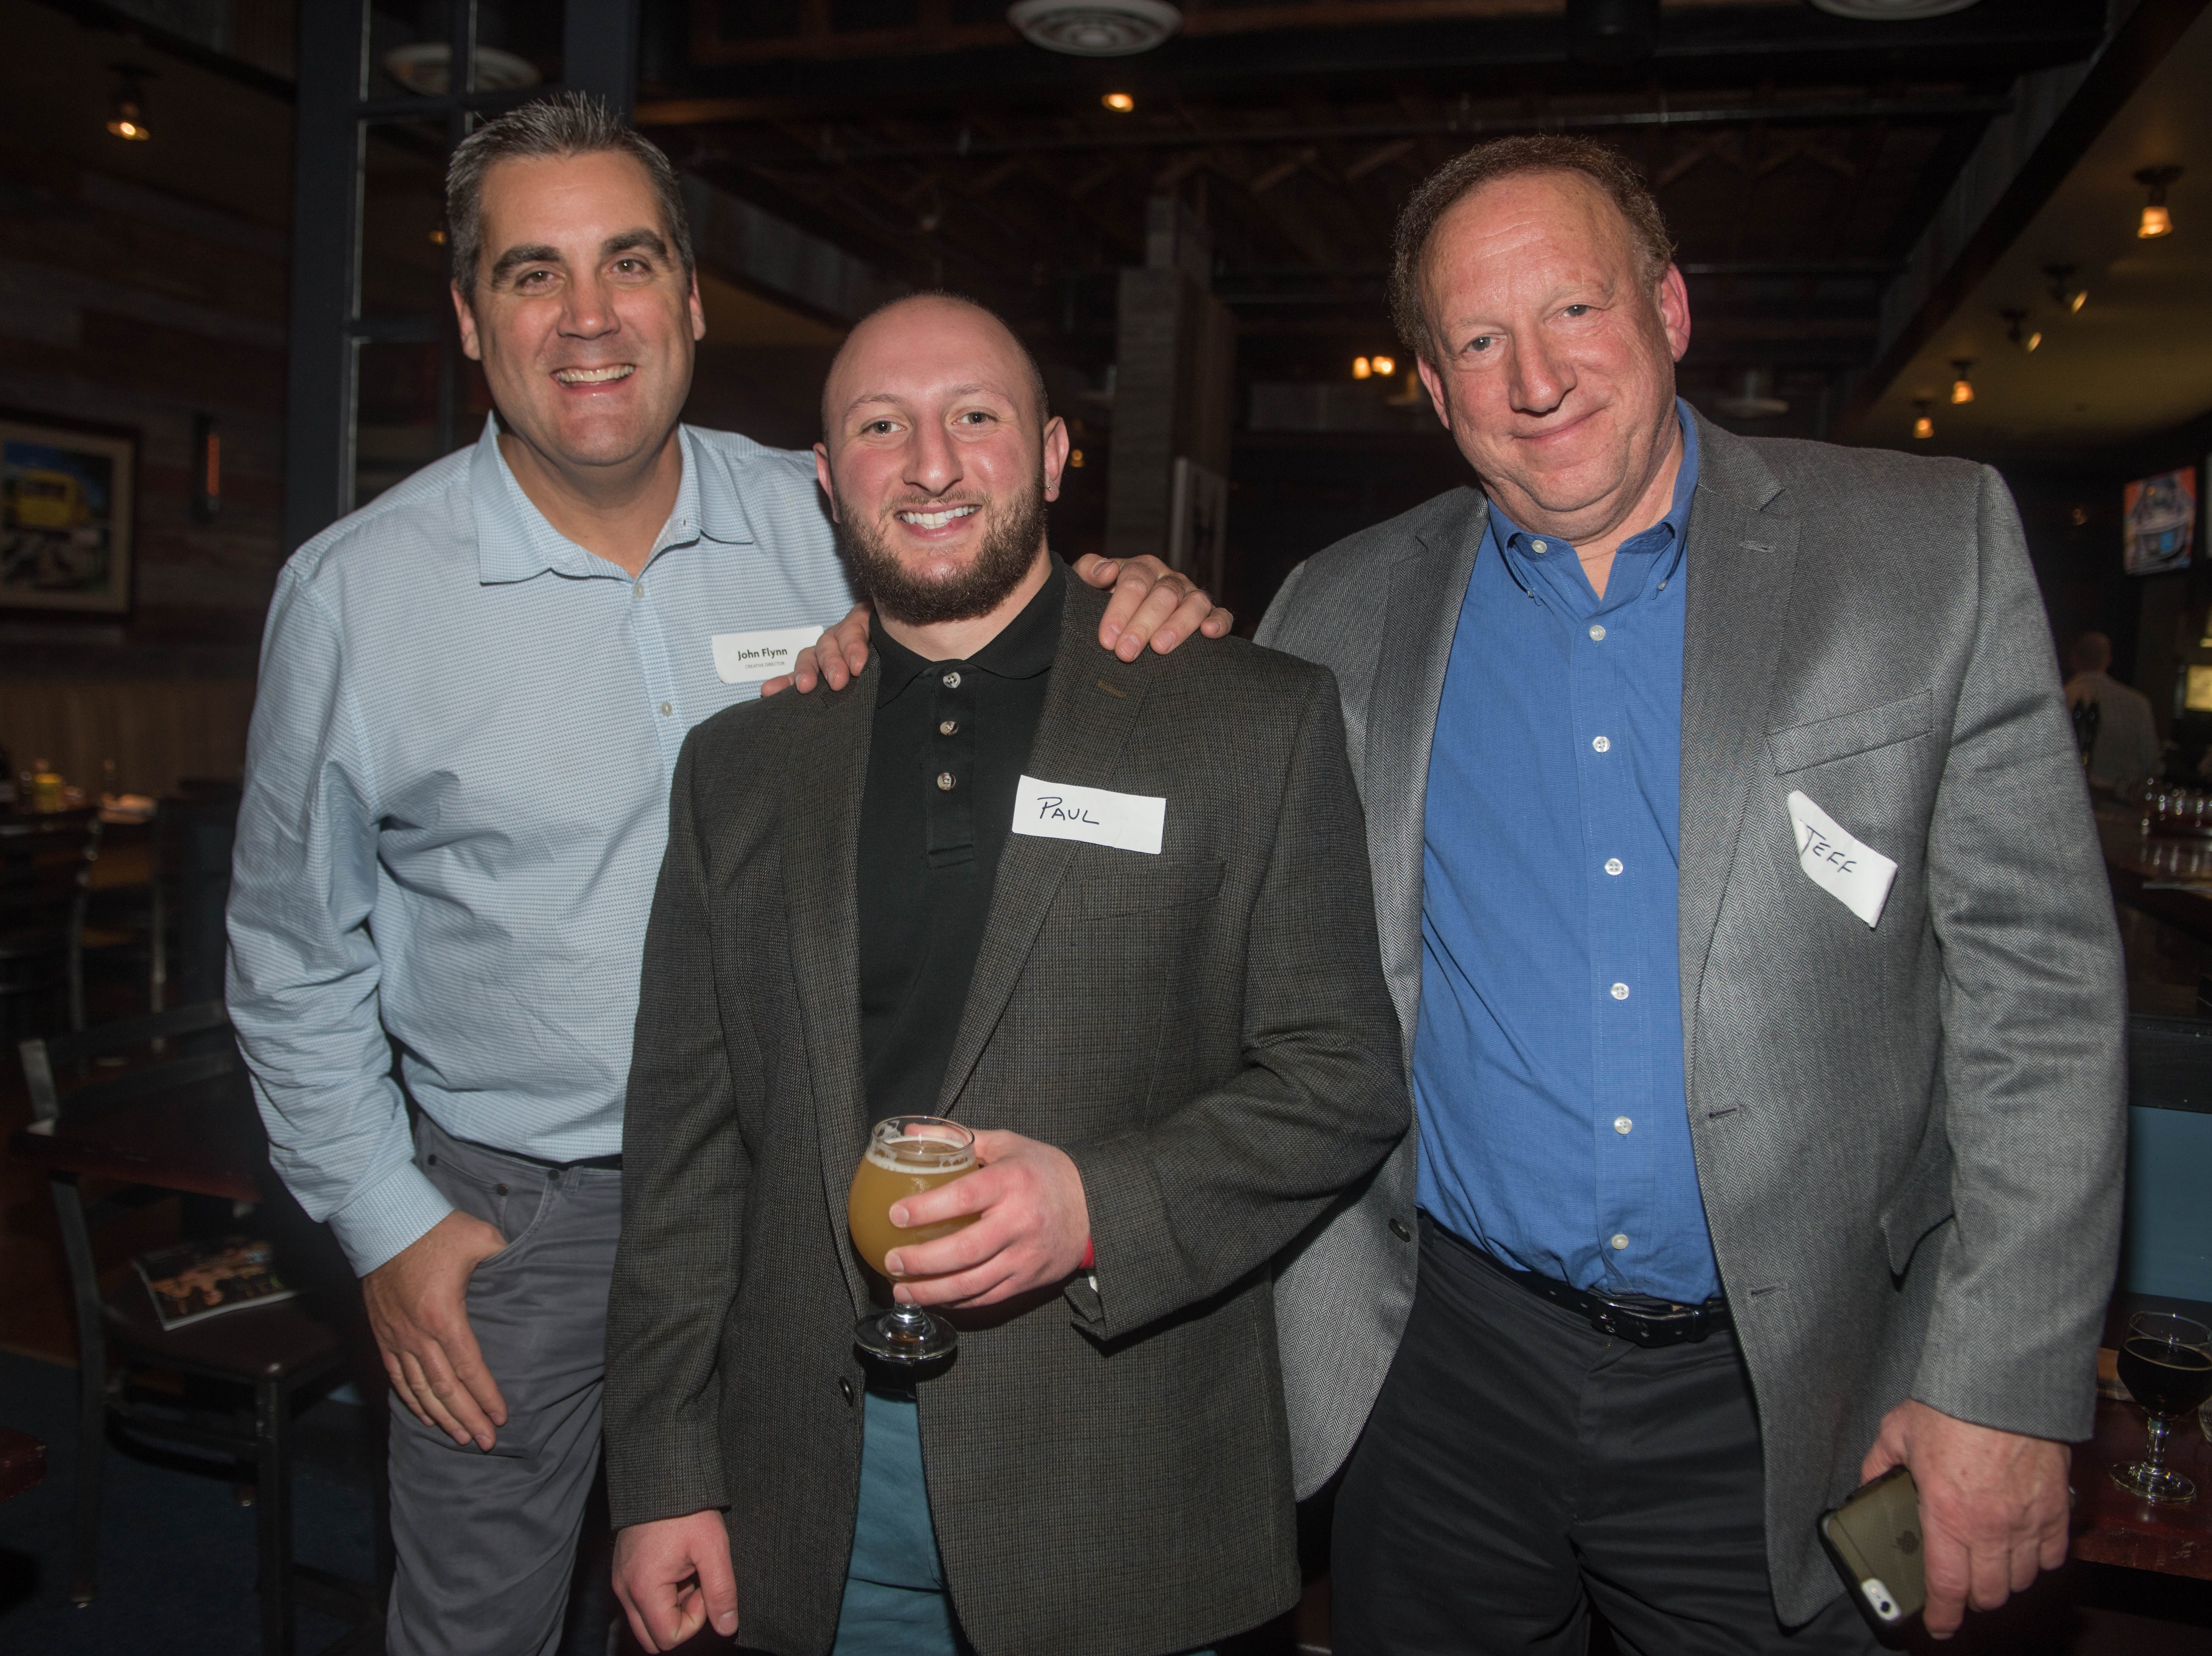 John Flynn, Paul Adam and Jeff Adam. (201) Magazine and NorthJersey.com held Taste Test Tuesday at he Dog and Cask in Rochelle Park with this month's cover model, Lauran Tuck and former cover model and former NY Giant Justin Tuck. 11/13/2018